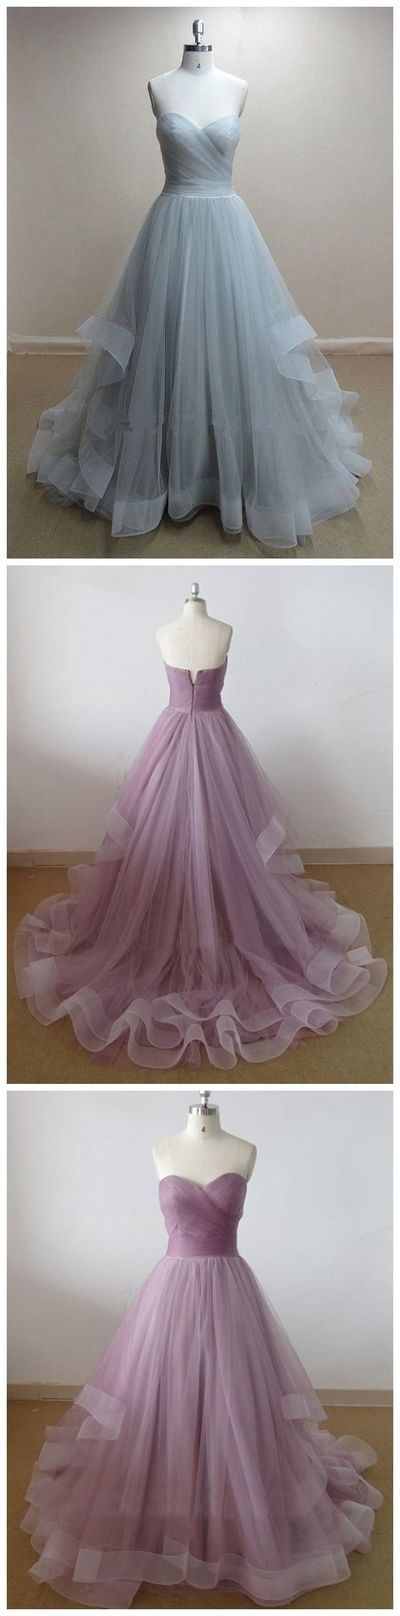 2017 Custom Made Charming Tulle Prom Dress, Sweetheart Prom Dress, Simple Ball Gown,Evening Dress